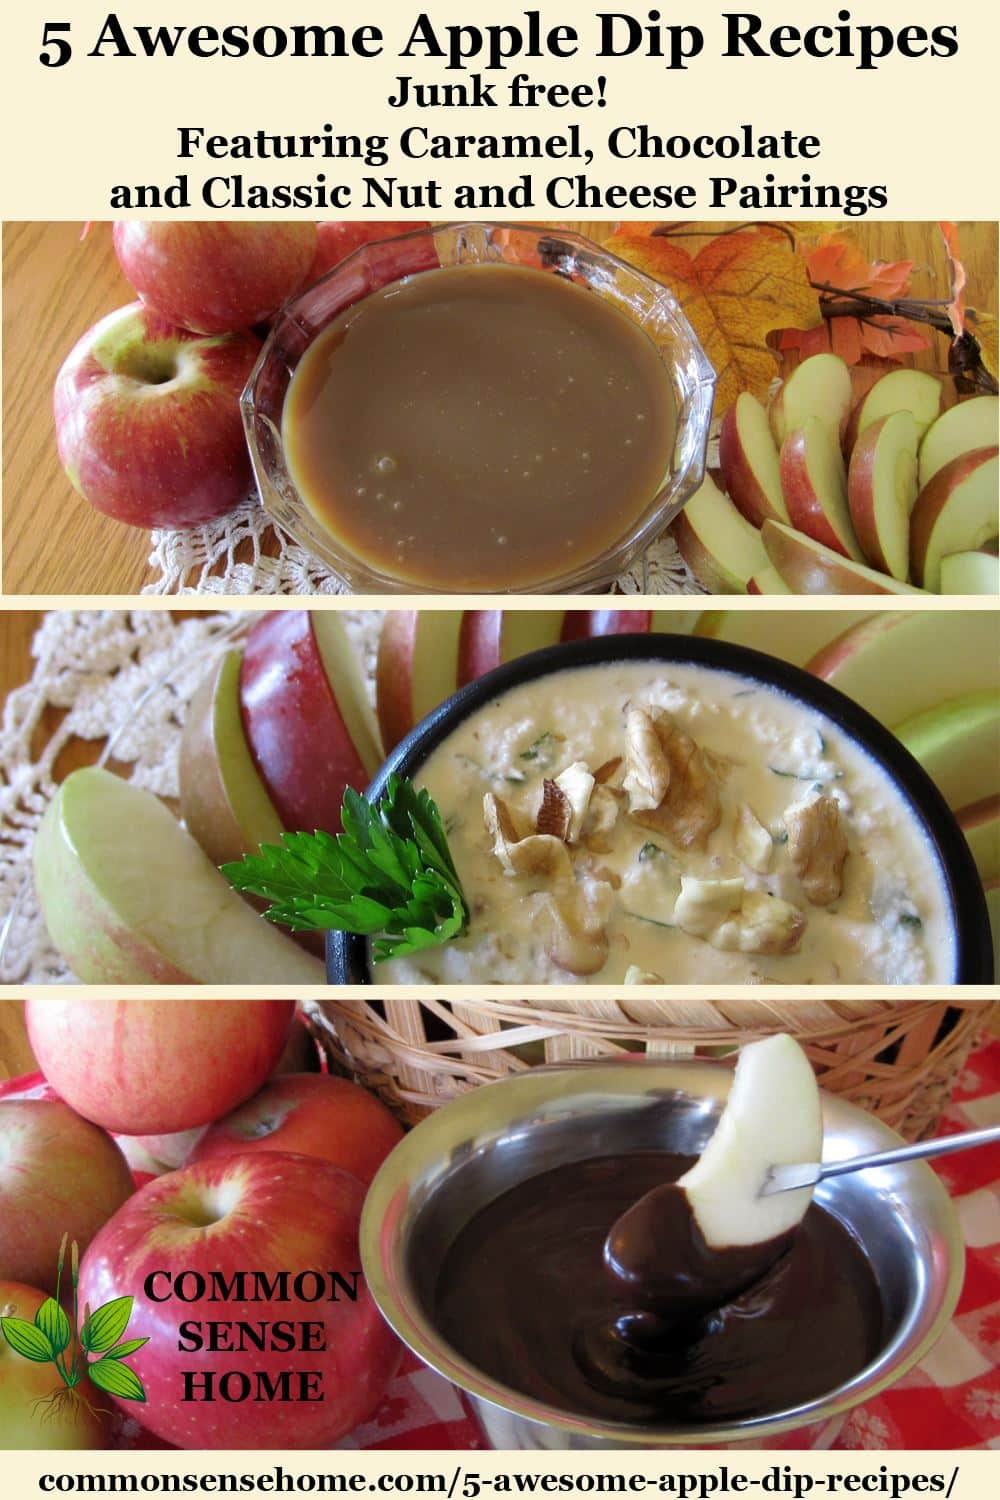 Apple dip variants